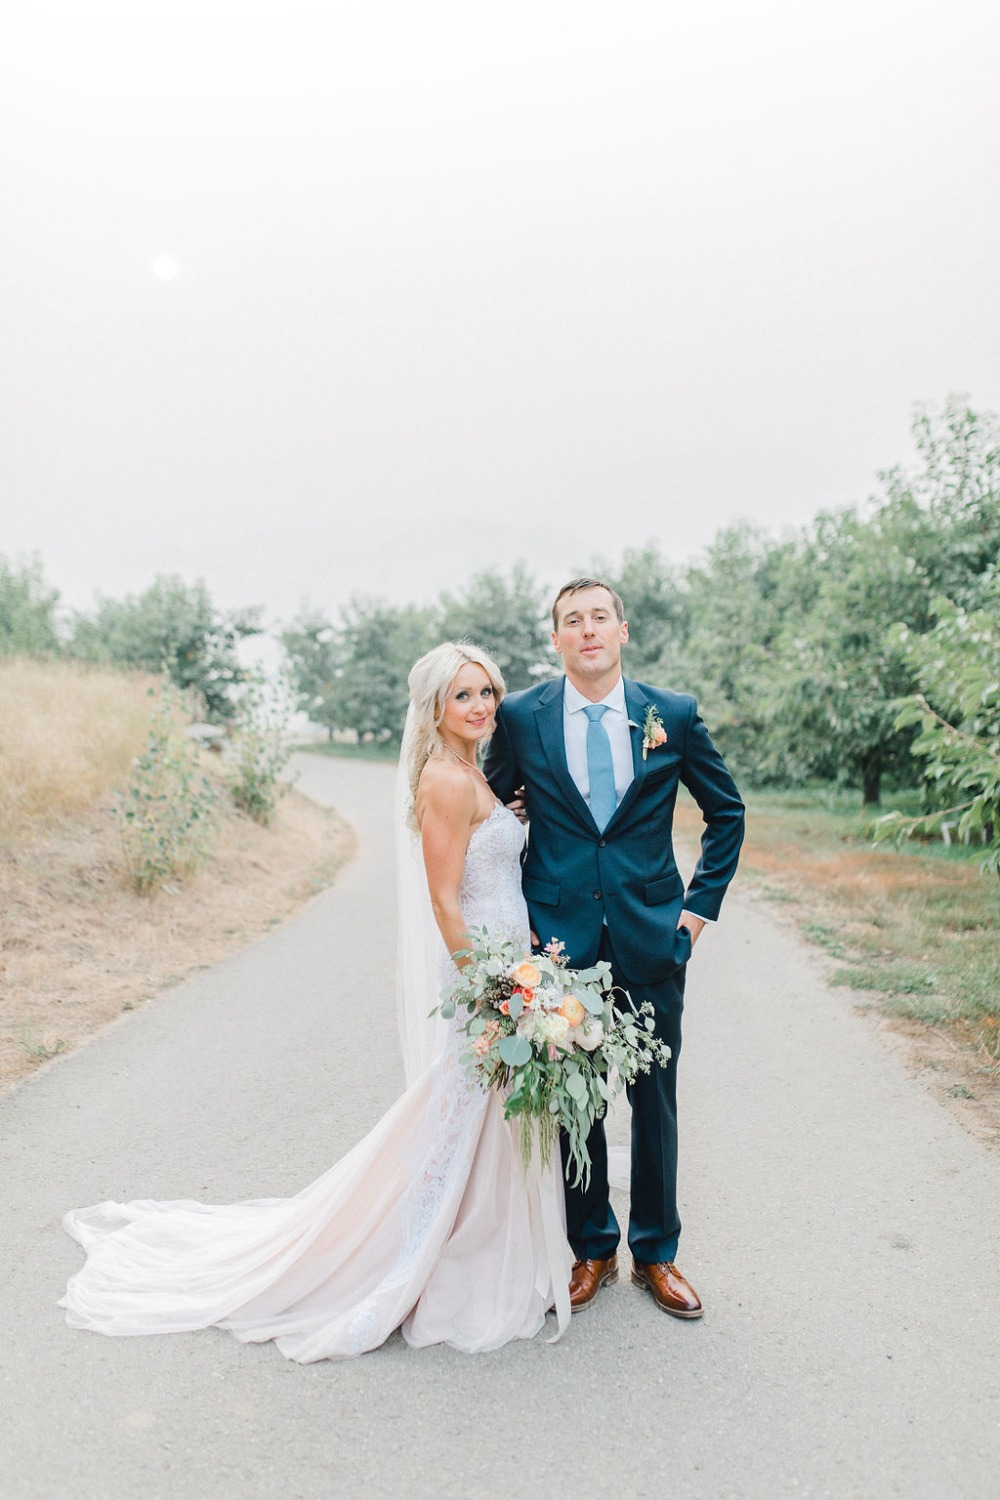 Chic shades of blue outdoor wedding